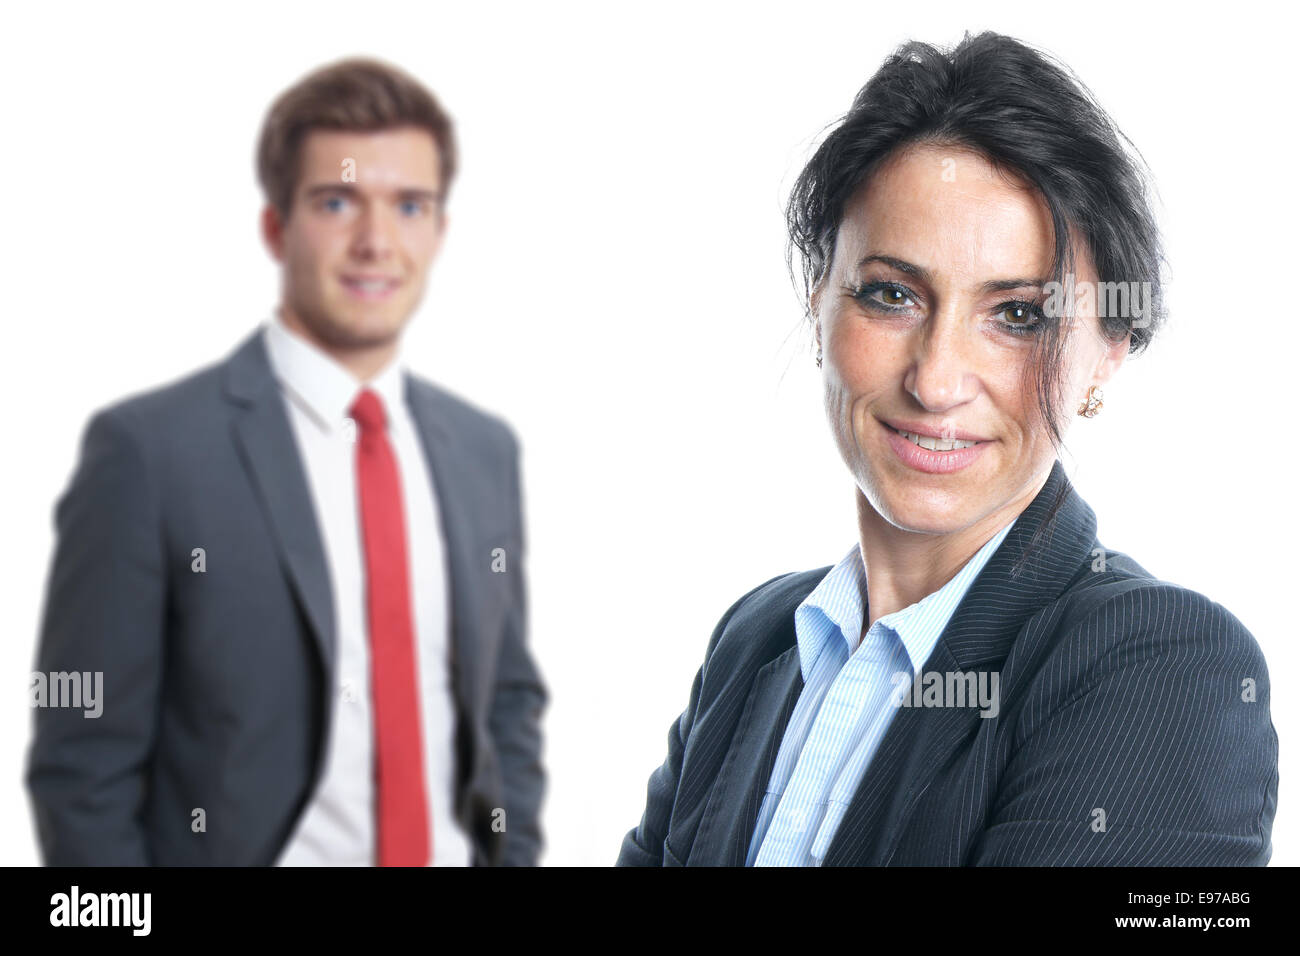 mid age business woman with younger businessman in the background - Stock Image